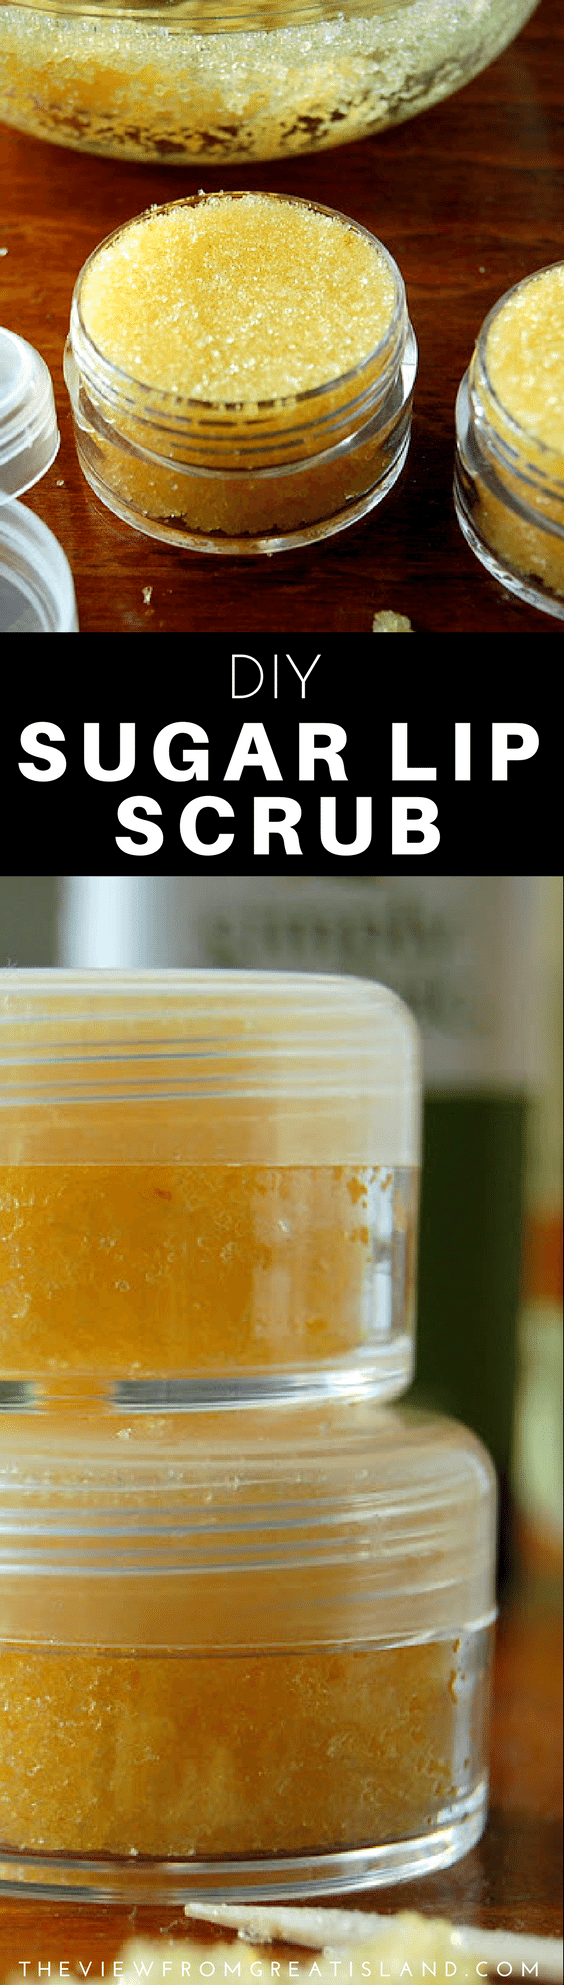 Skip the beauty aisle and make your own Homemade Lip Scrub with all natural sugar and almond oil ~ it works and it tastes great, too! #diylibscrub #homemadelipscrub #lipscrub #sugarlipscrub #diybeauty #beauty #skincare #sugarlipscrubrecipe #gifts